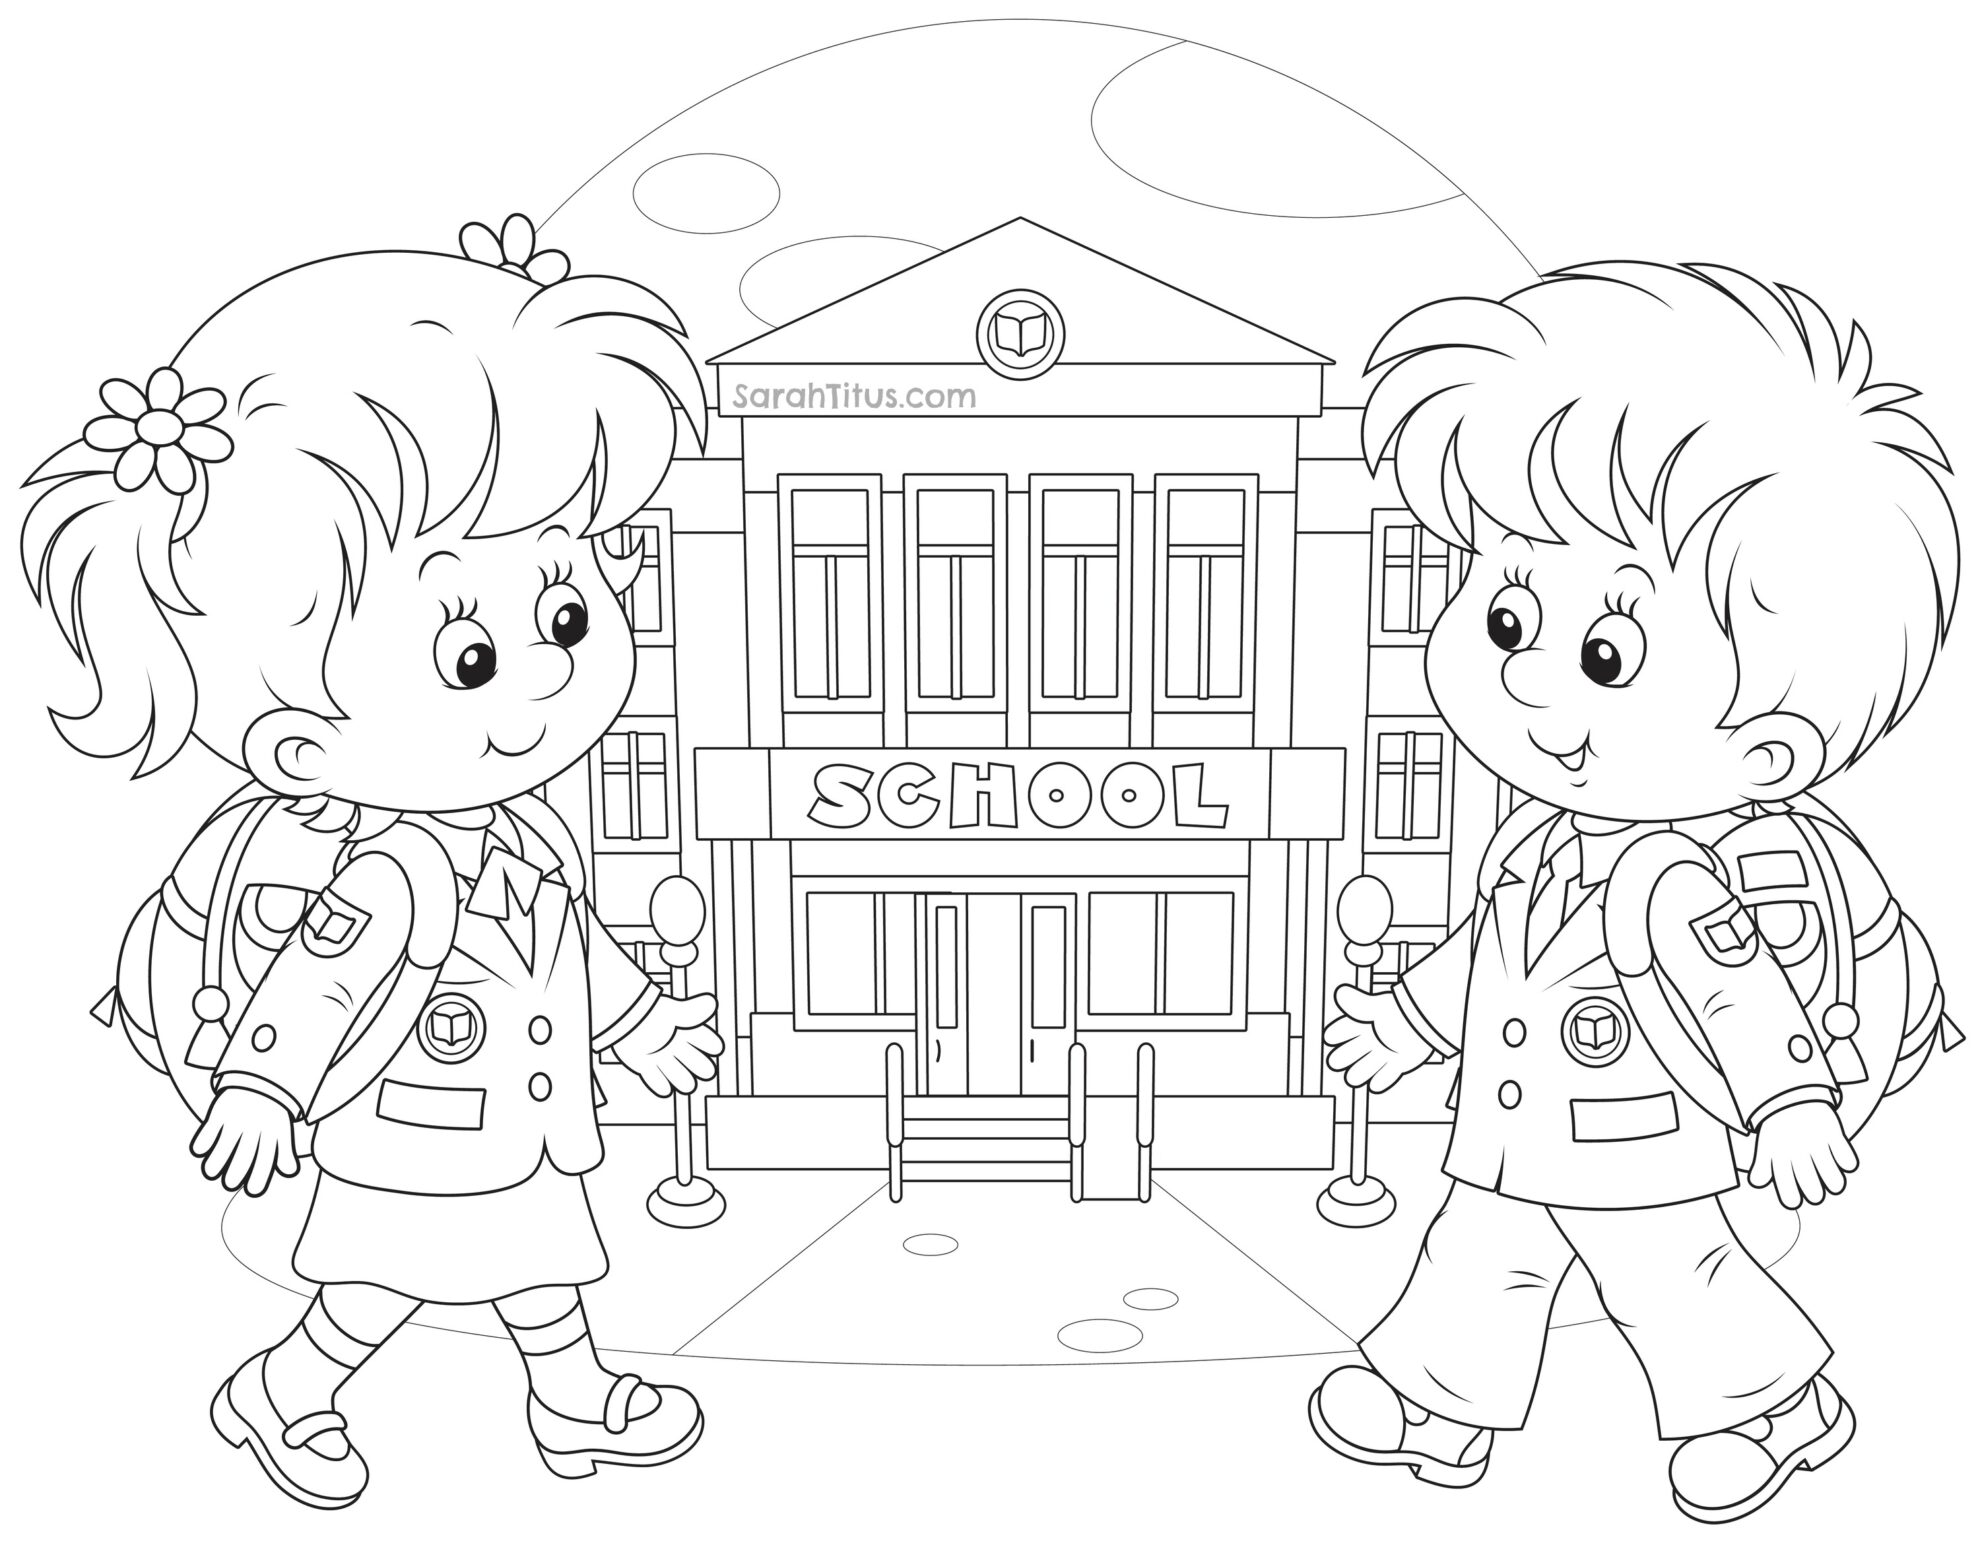 coloring school for kids school drawing at getdrawings free download school kids for coloring